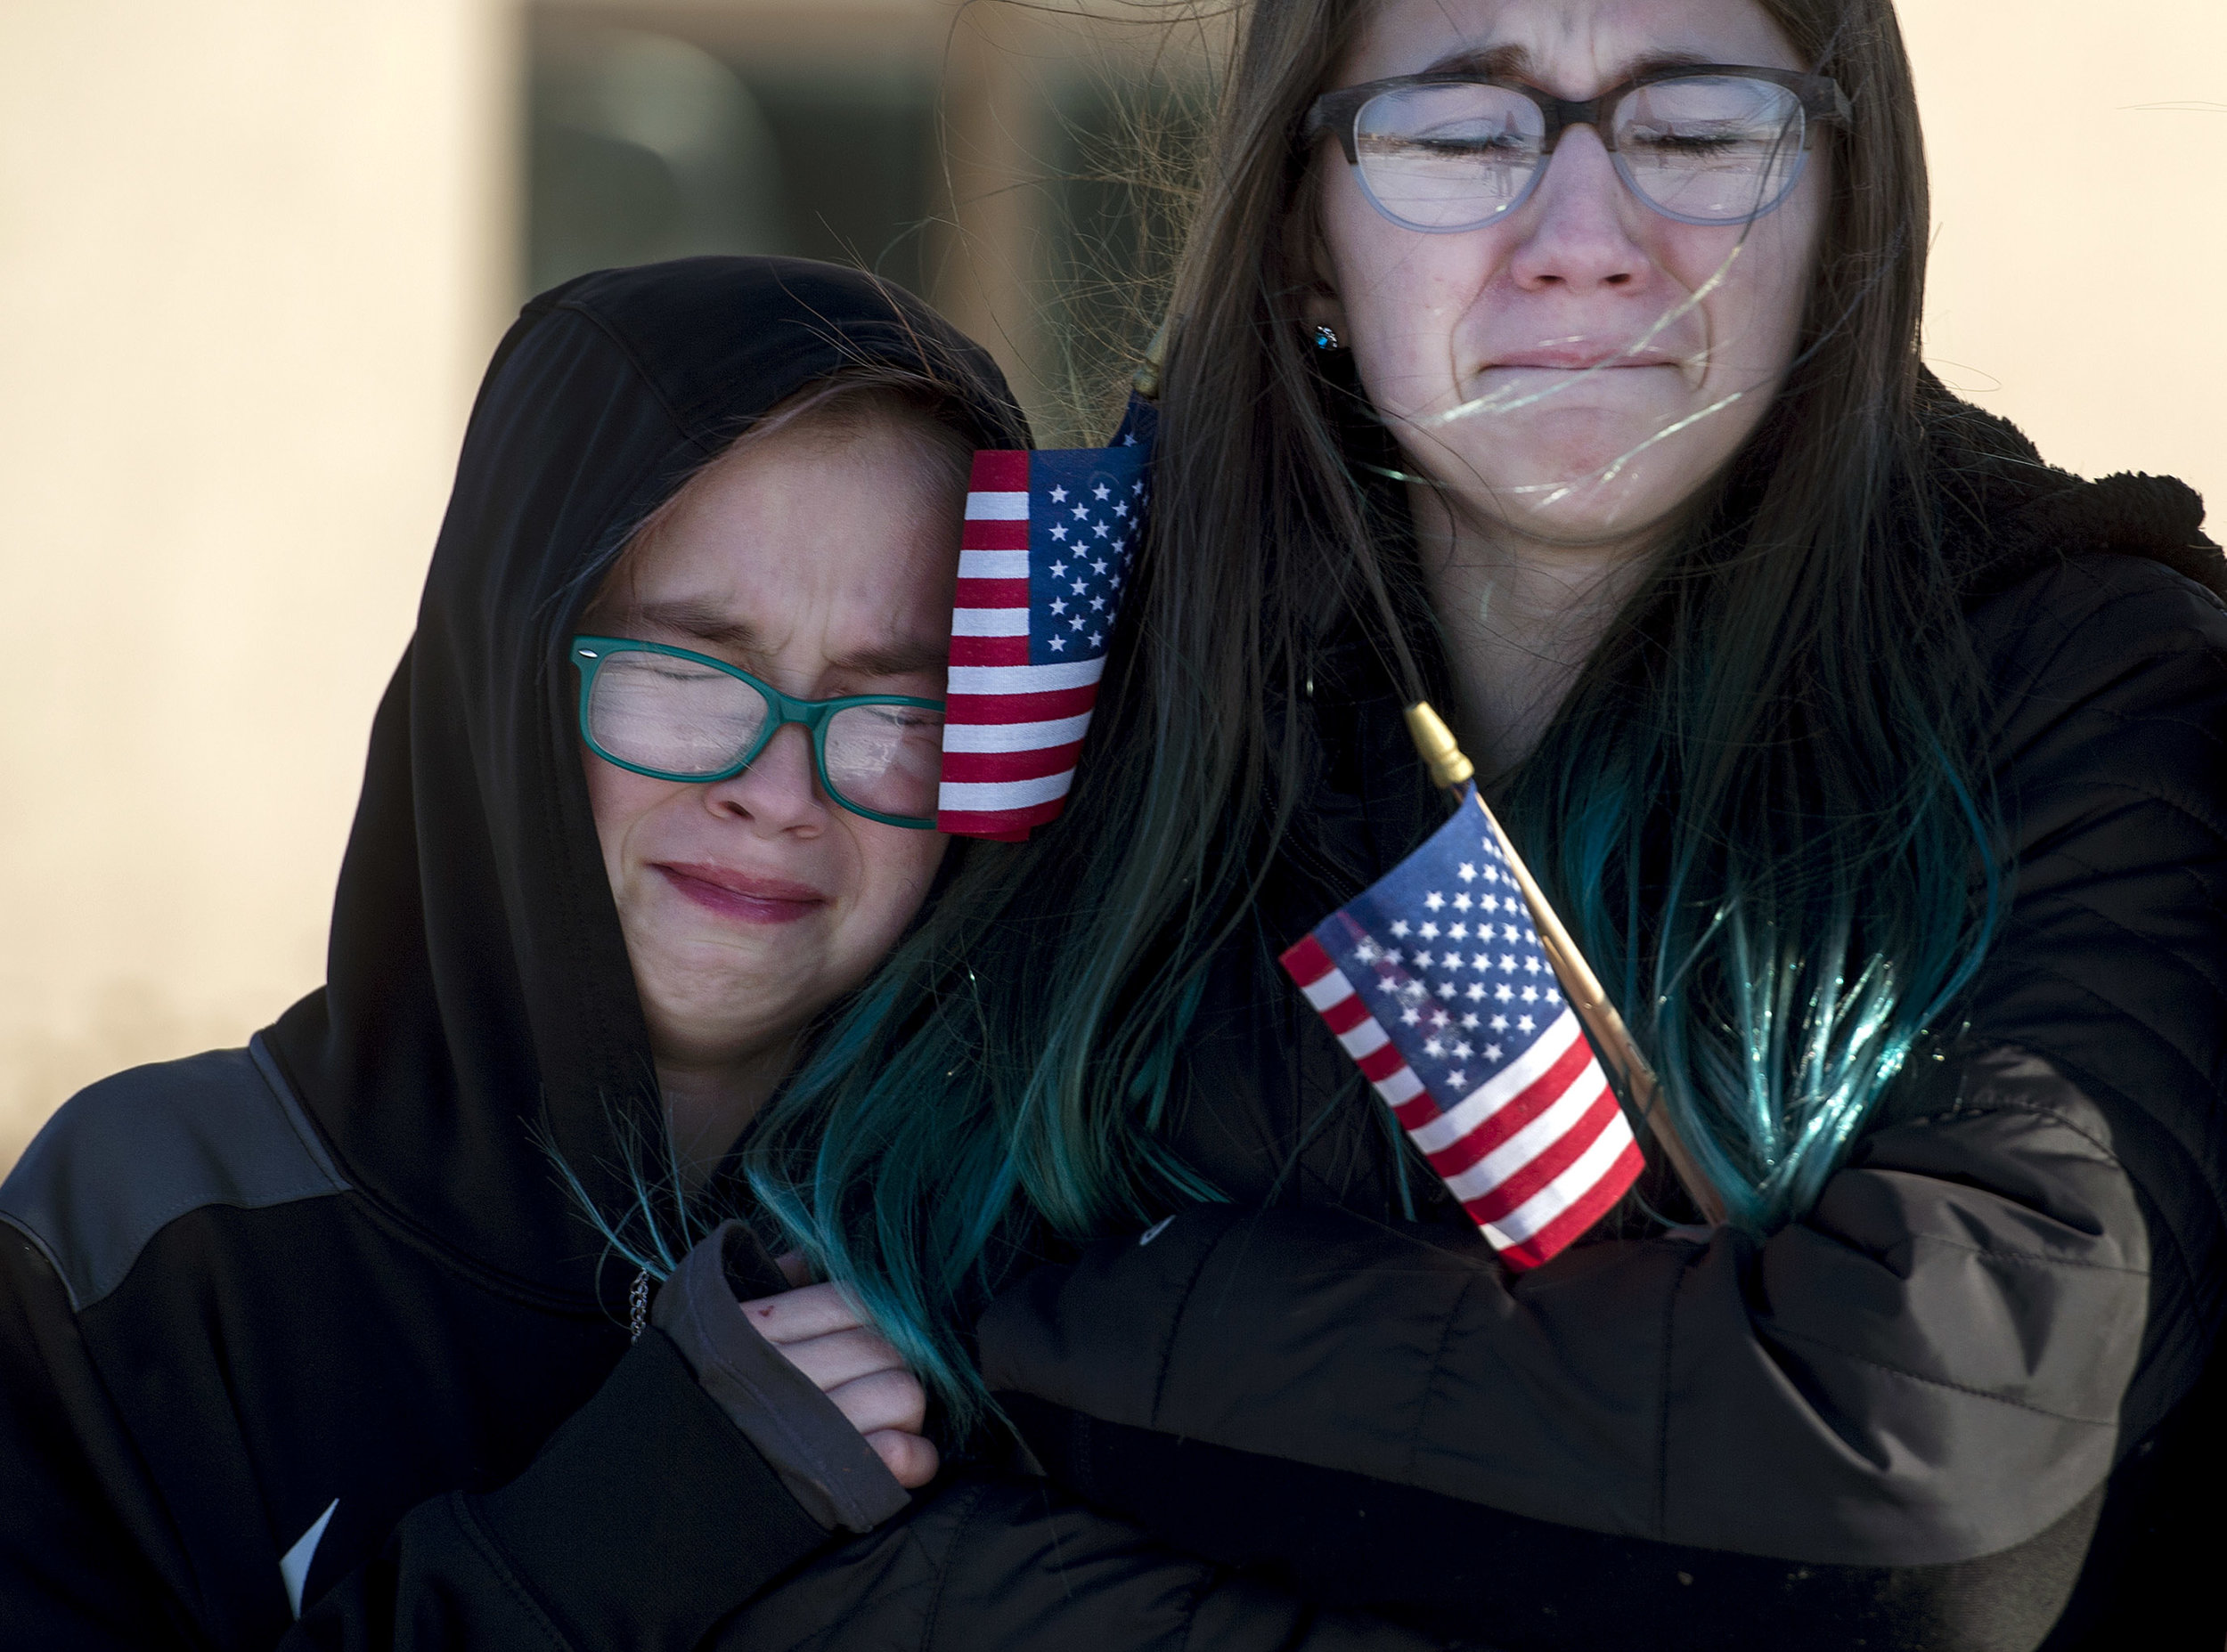 Gabby Karwowski, 10, and her sister Natalie Karwowski, 12, cry as a C-130 carrying their father Master Sgt. Christopher Karwowski returns from deployment on Friday, Jan. 19, 2018, at the 911th Airlift Wing in Coraopolis. Four C-130 aircrafts returned from a four-month deployment to Qatar, the aircrafts' last deployment before retirement. (Steph Chambers/Post-Gazette)